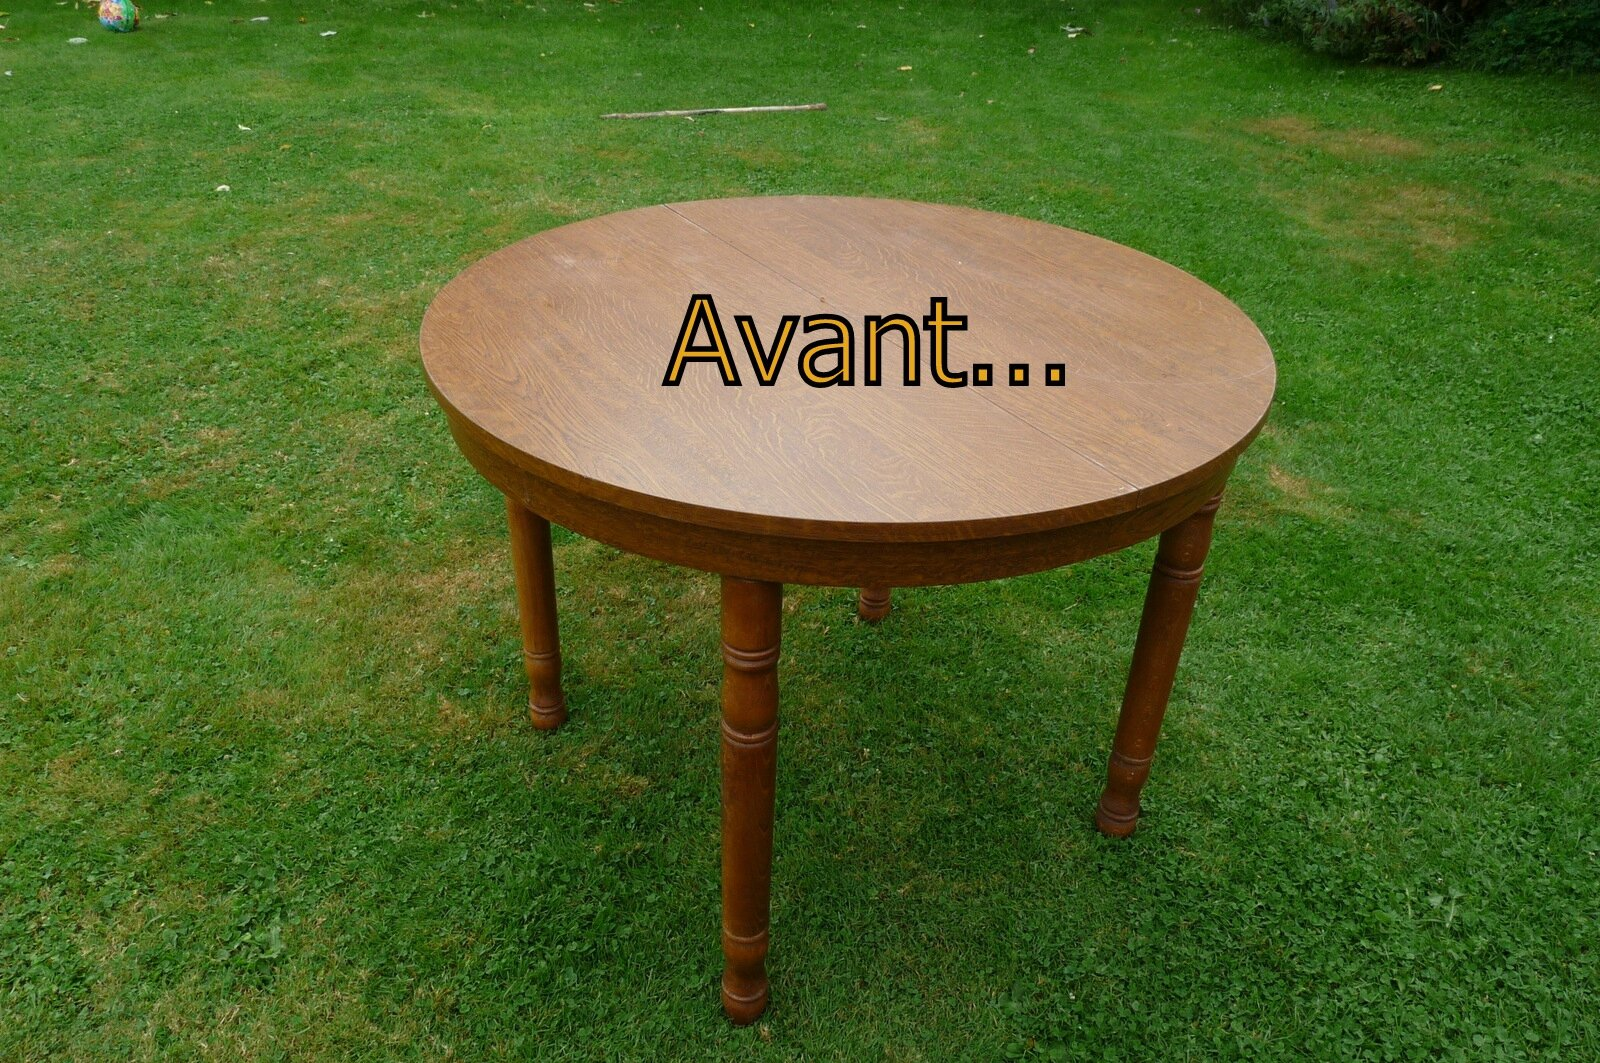 Customiser une vieille table basse en bois - Customiser une table en bois ...